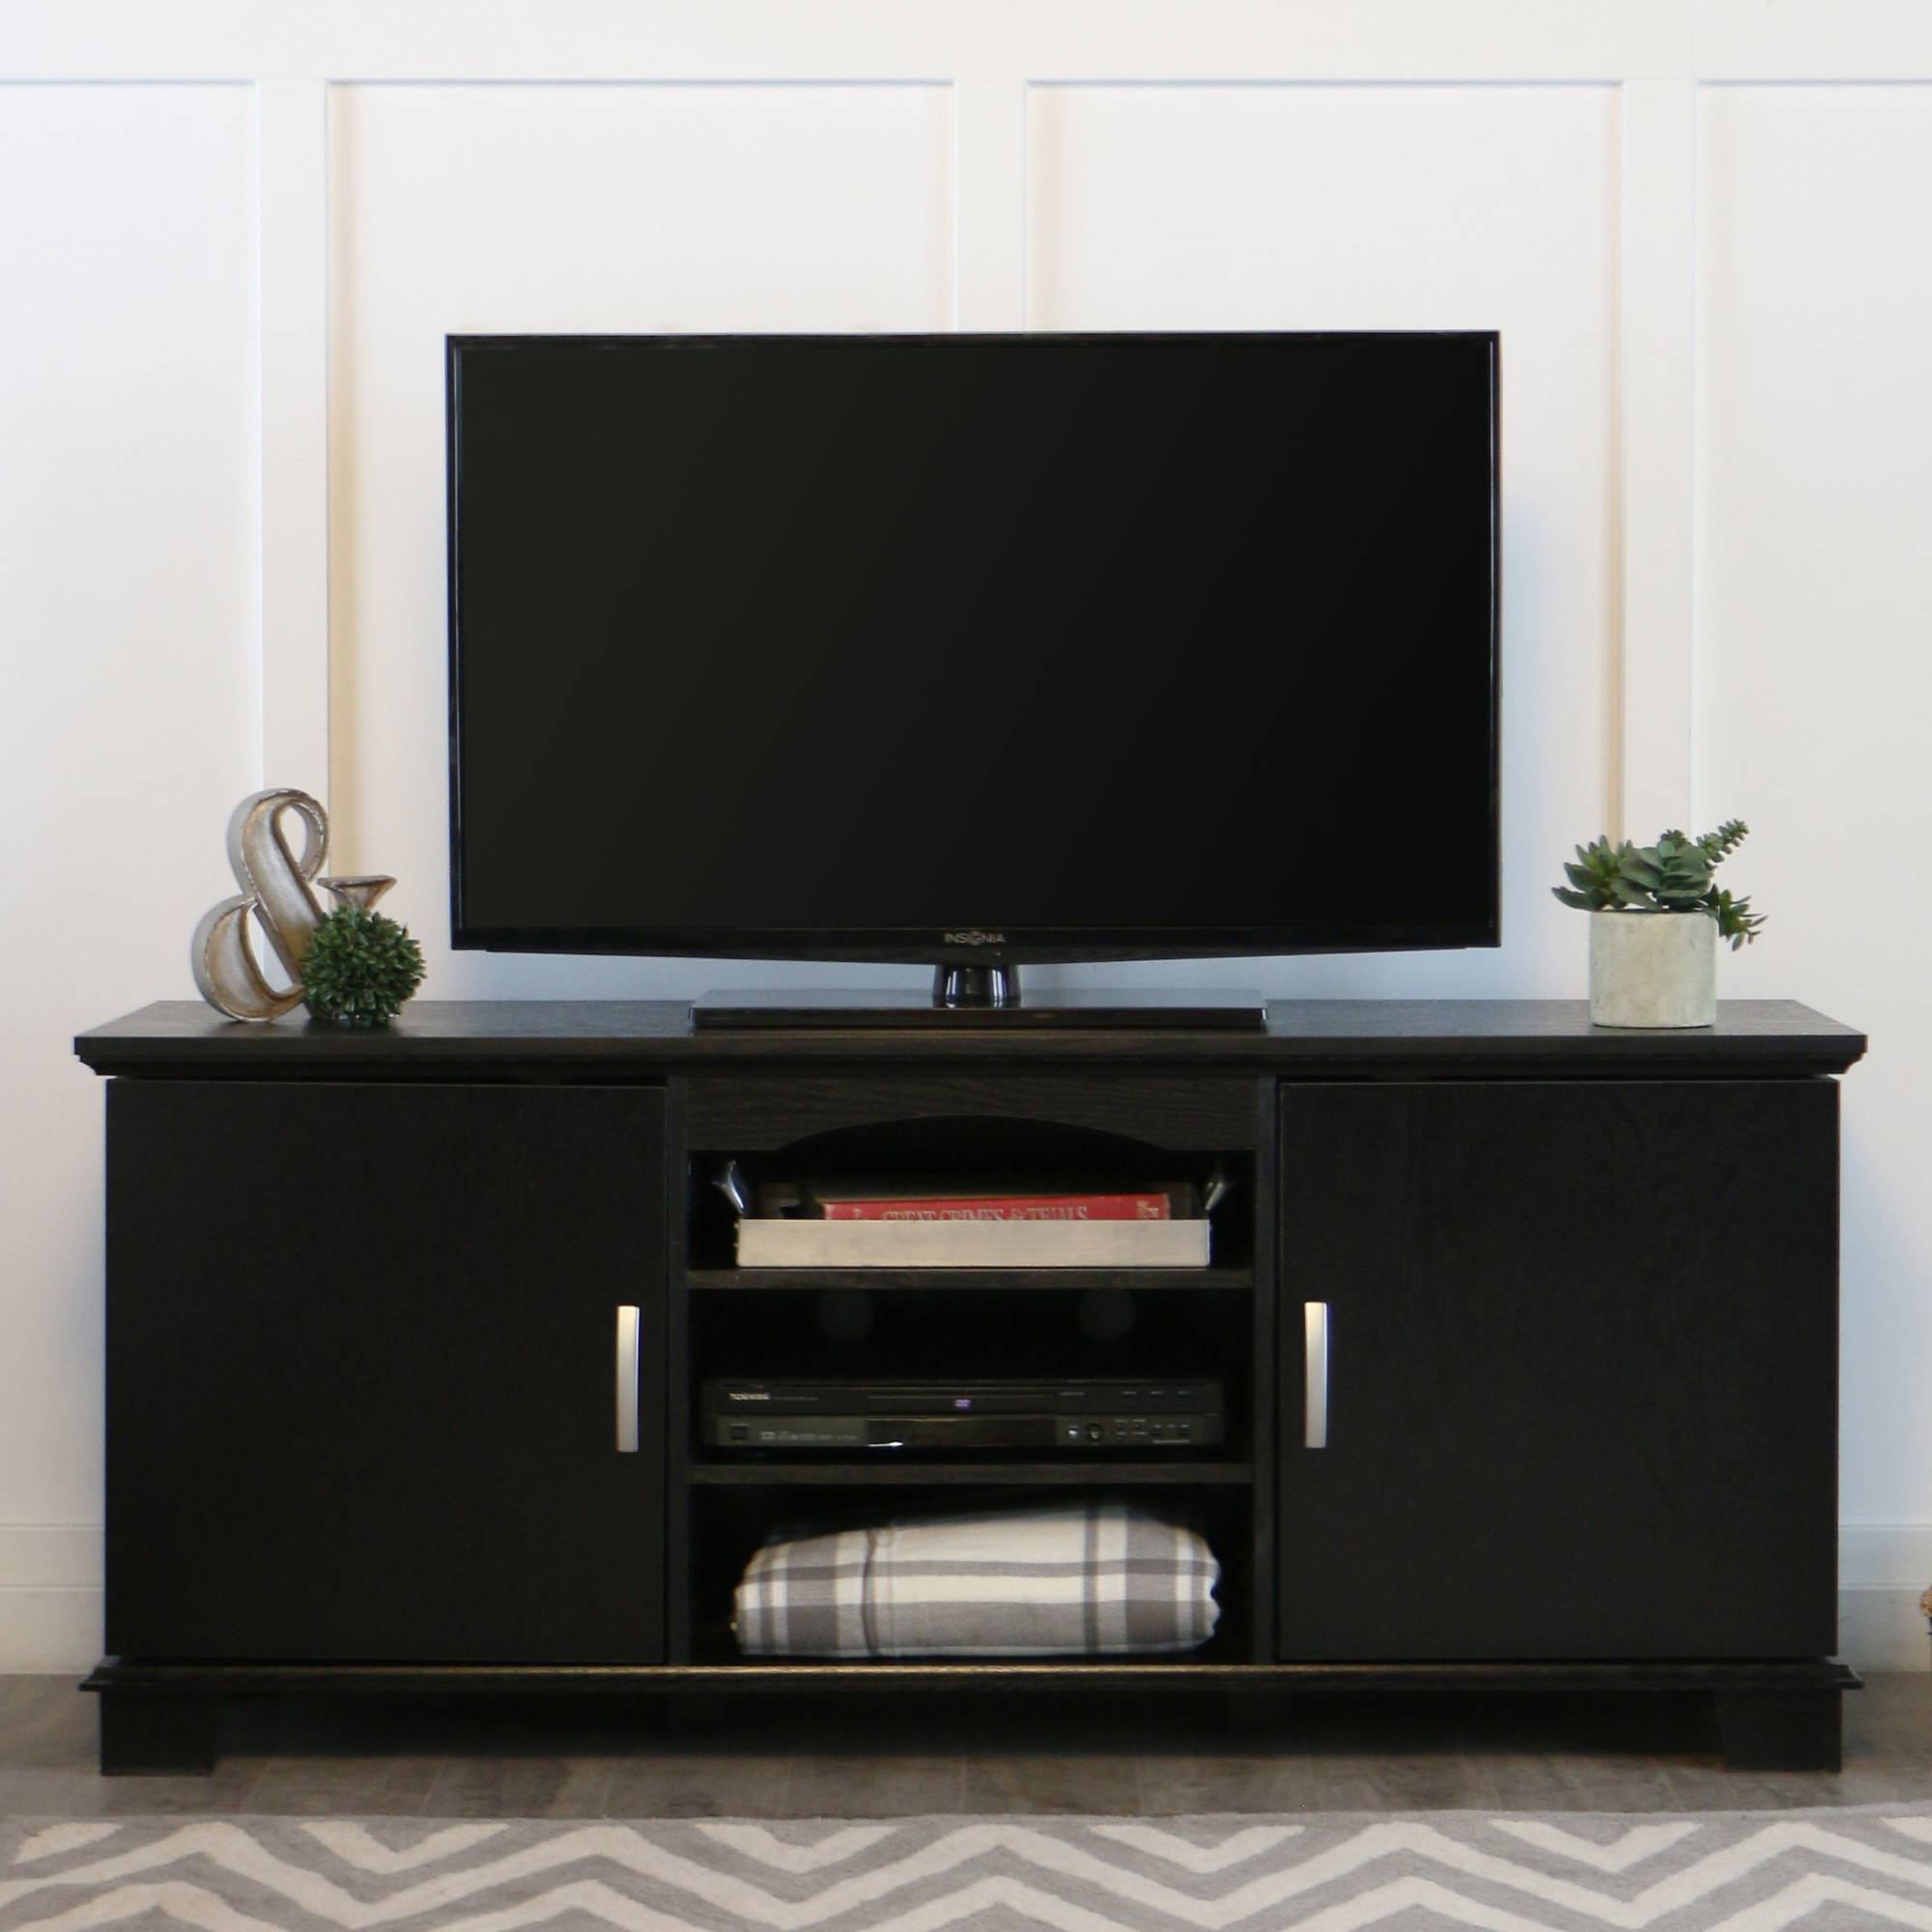 30 Inch Wide Tv Stand 36 Corner Walmart Stands 39 Hardwood 48 Iron Throughout Murphy 72 Inch Tv Stands (Photo 5 of 30)